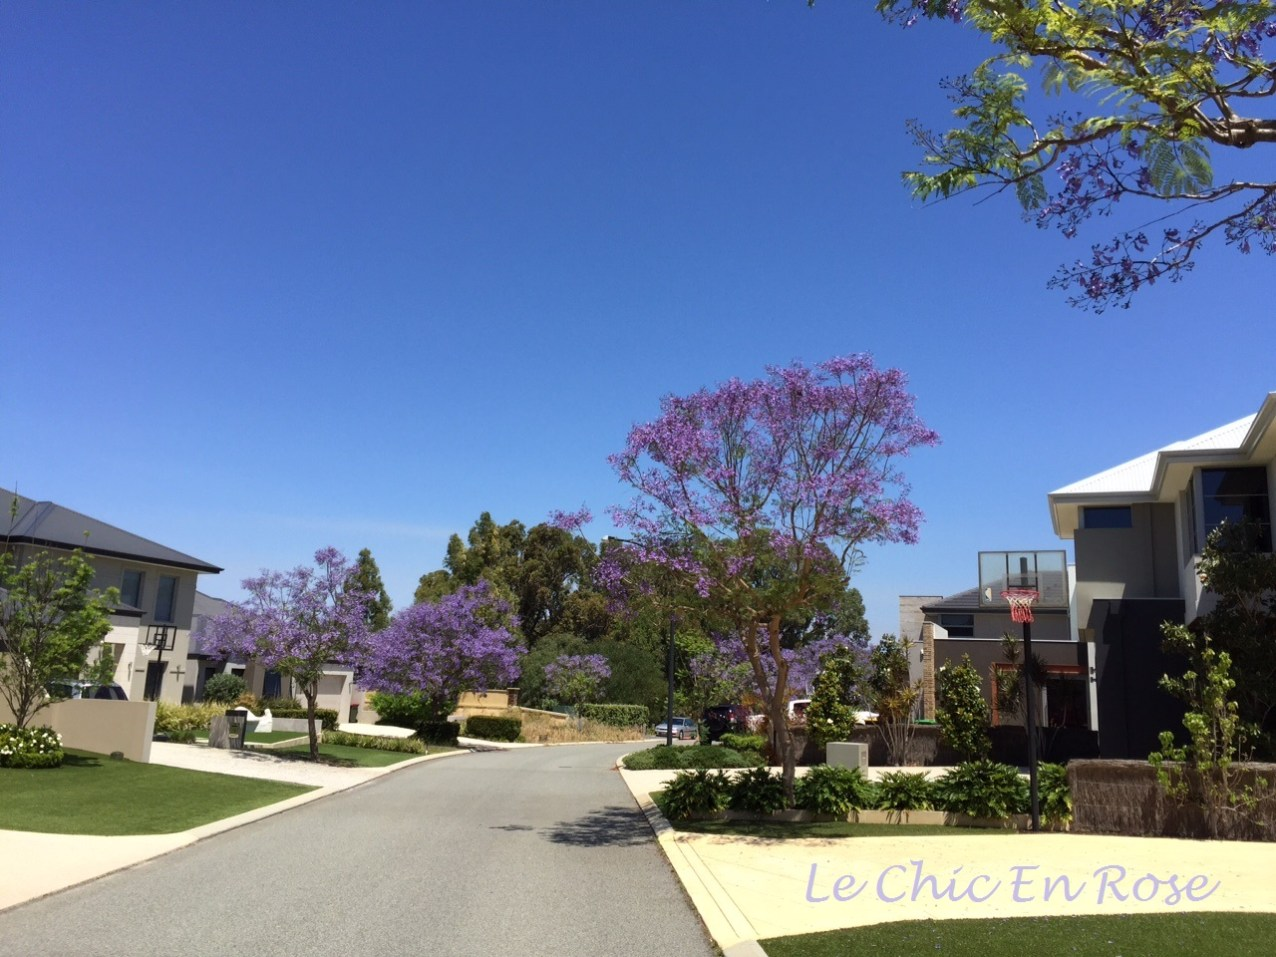 Another avenue lined with beautiful Jacarandas